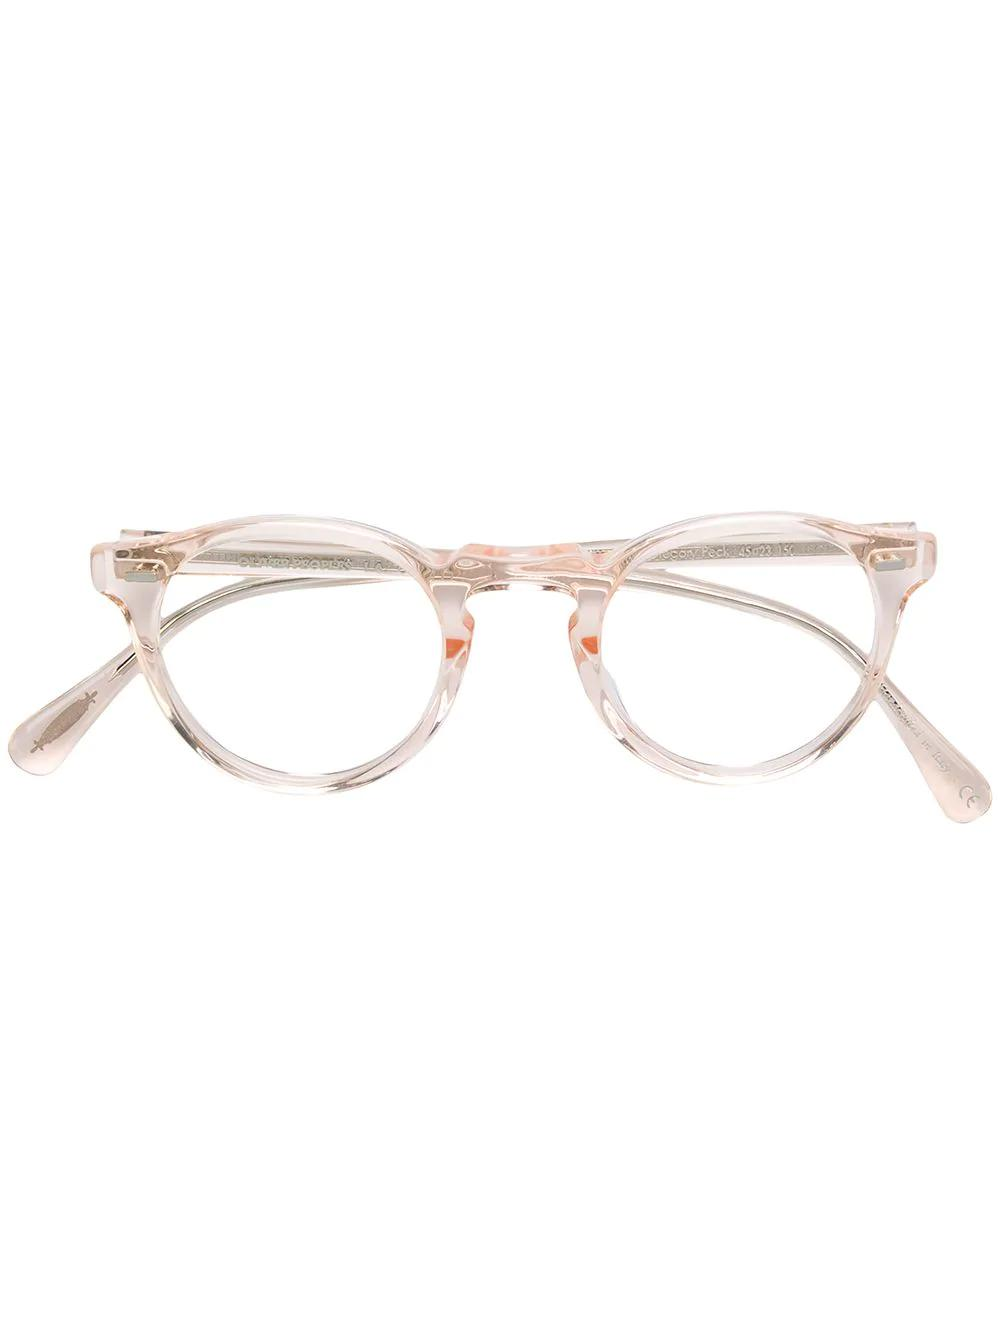 1491c09e7e Oliver Peoples Gregory Peck Glasses - Neutrals